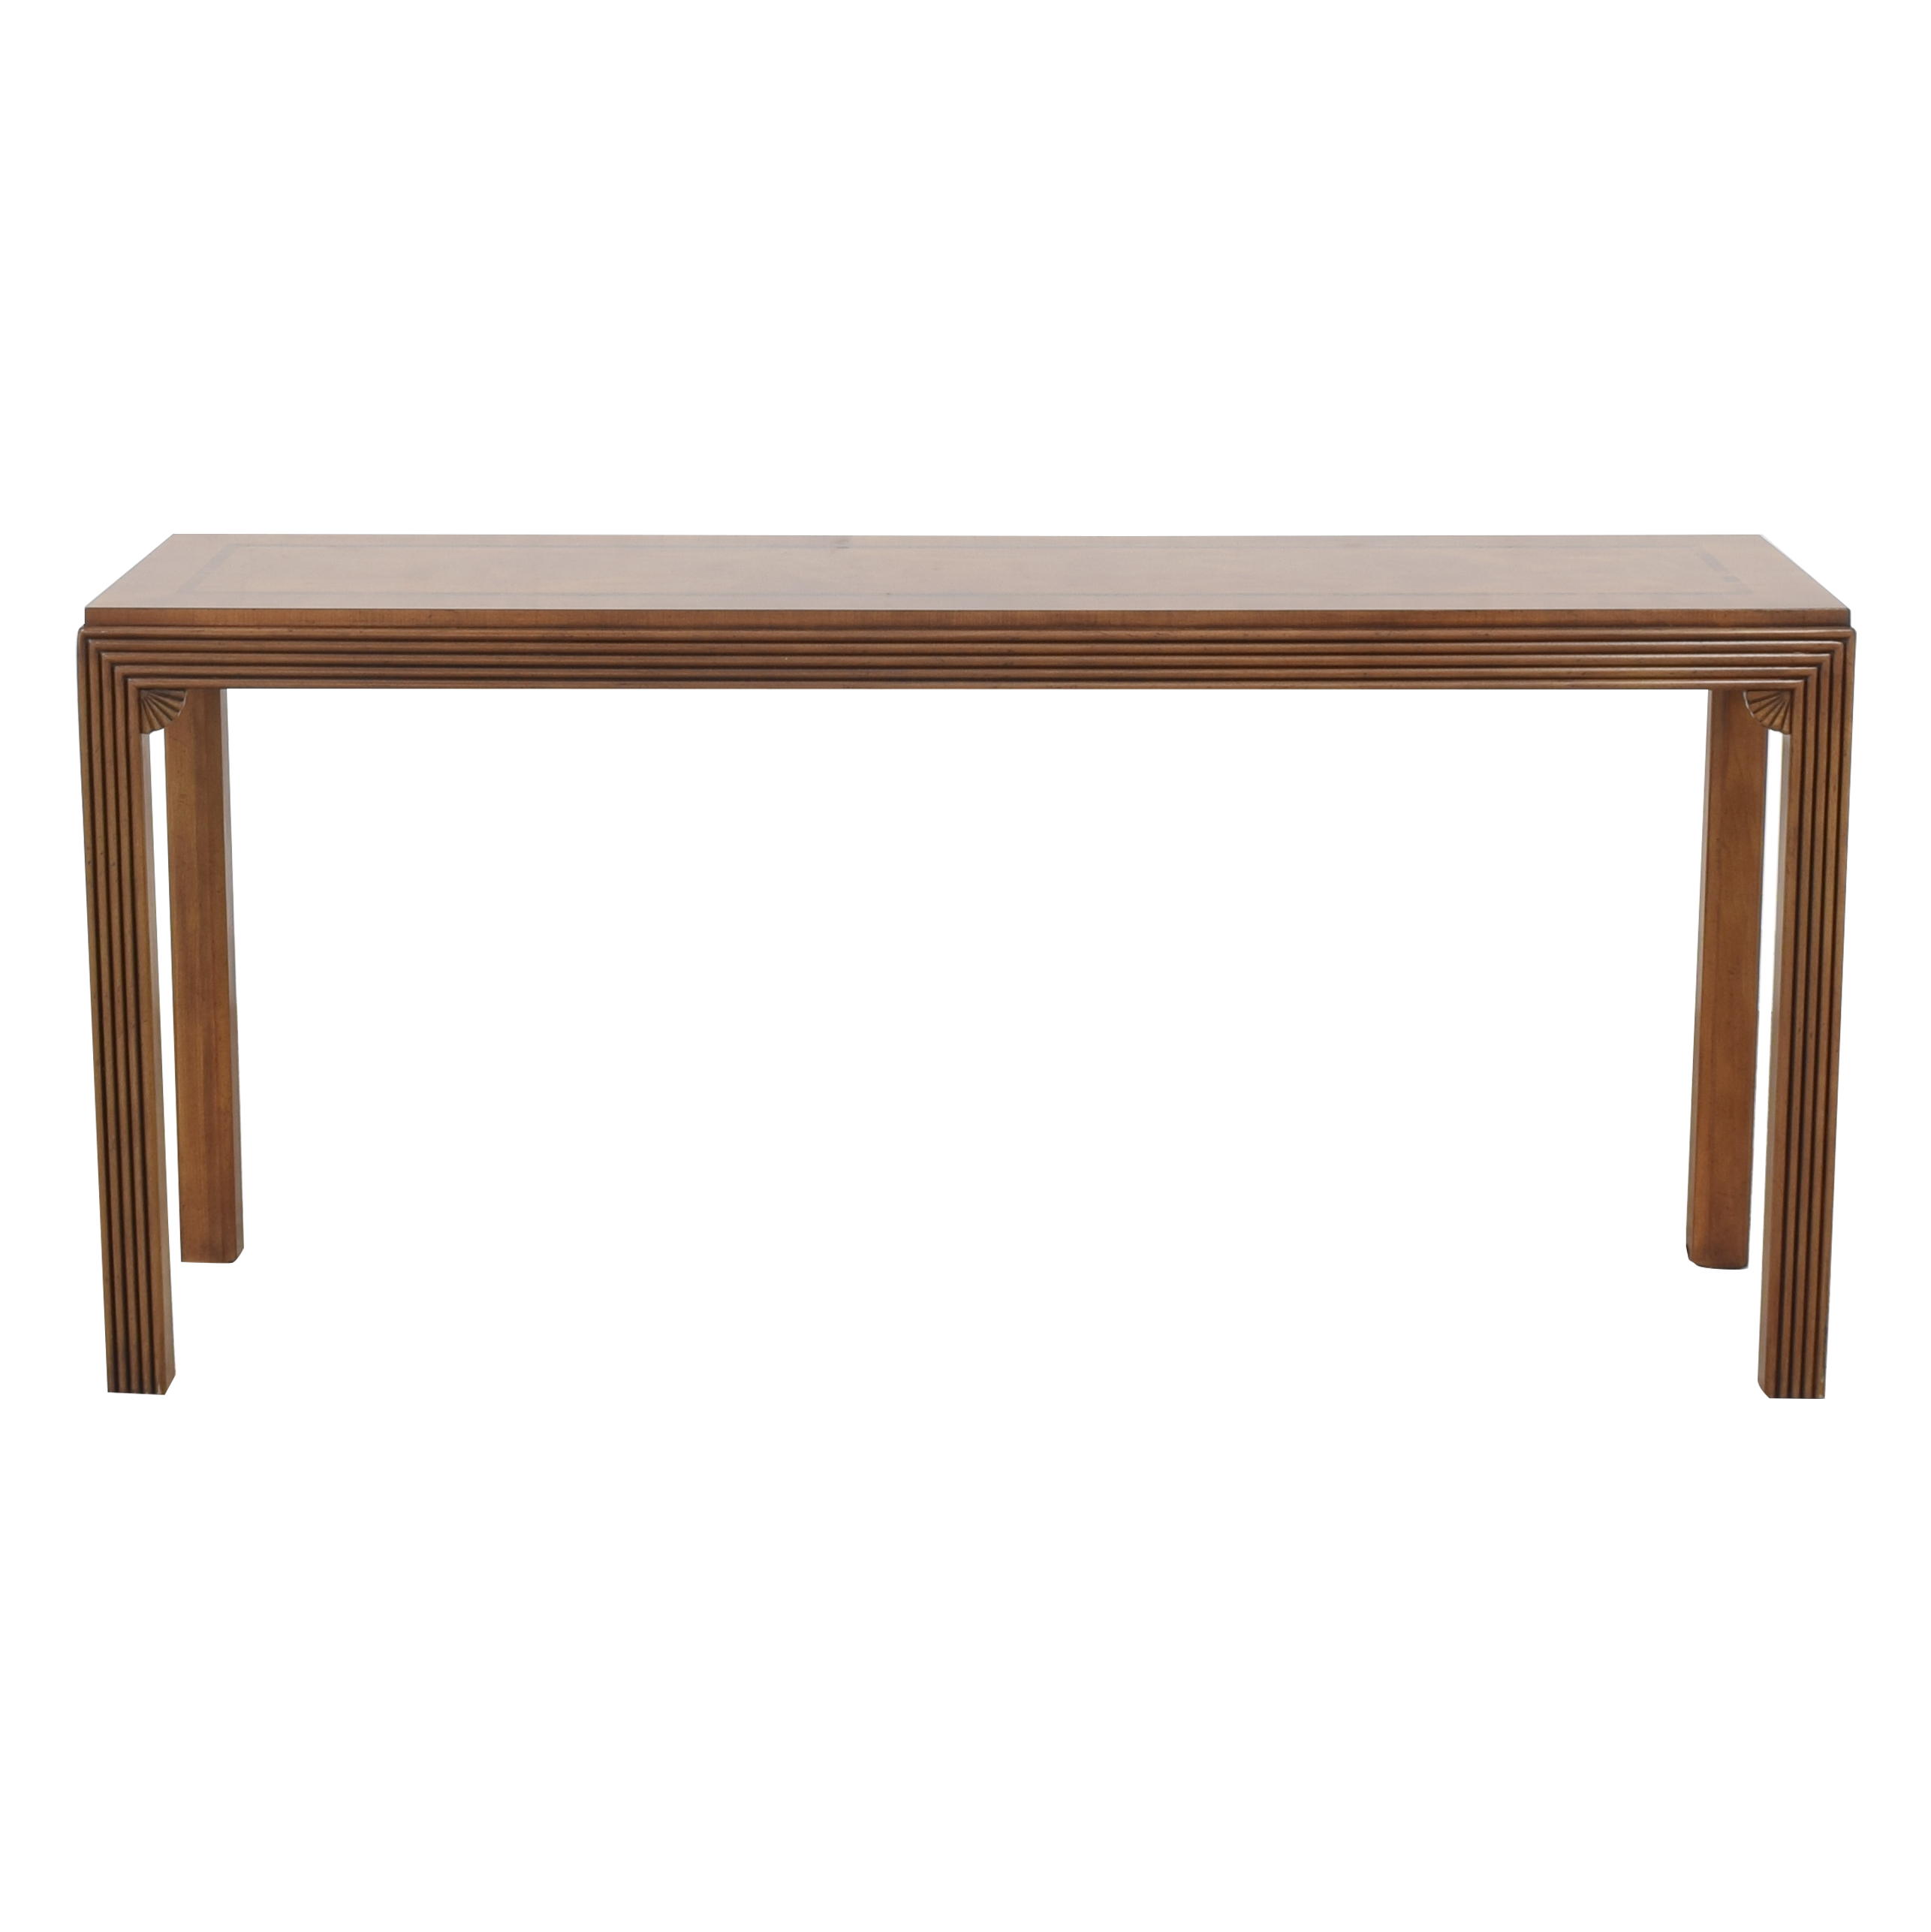 shop Drexel Heritage Console Table Drexel Heritage Accent Tables